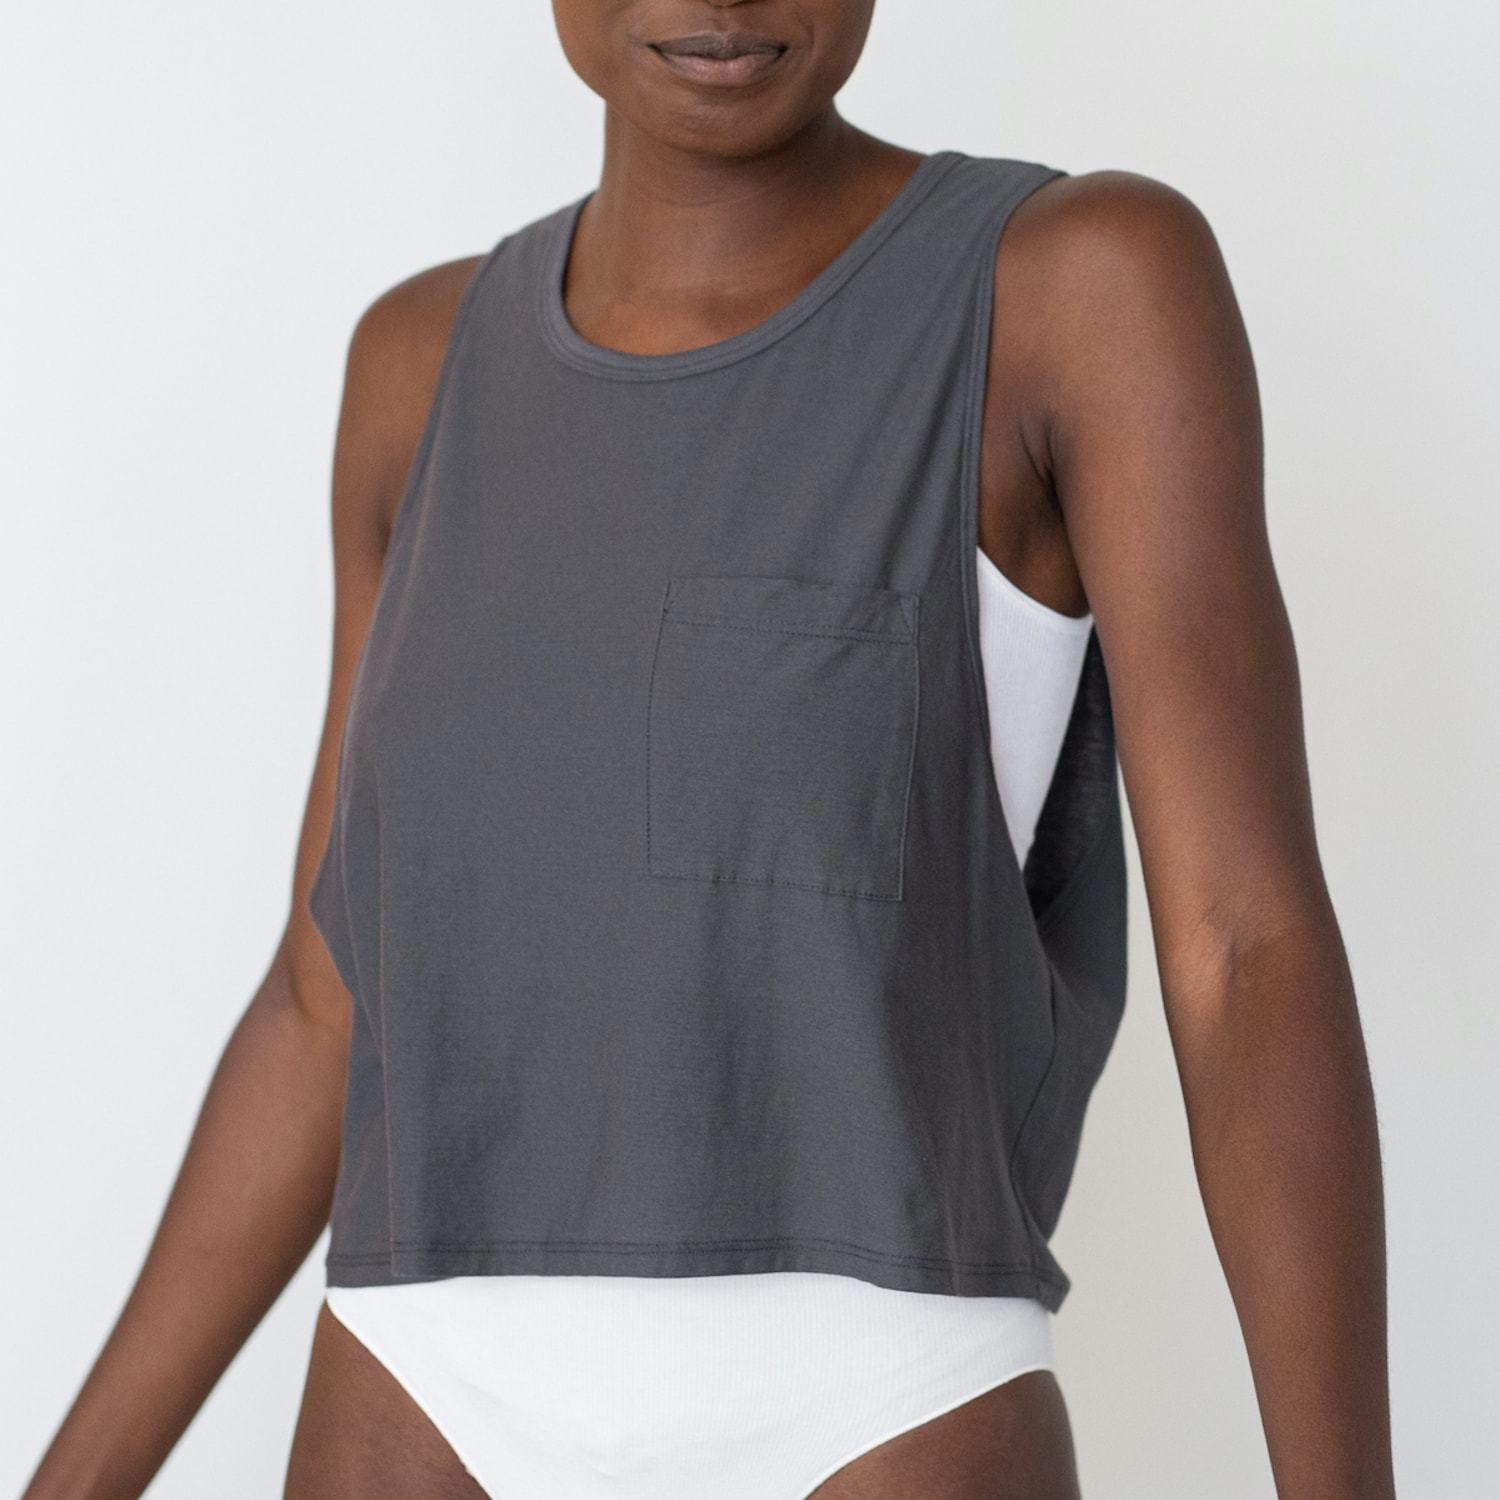 Lunya Sleepwear Cool Tank - #Eclipse